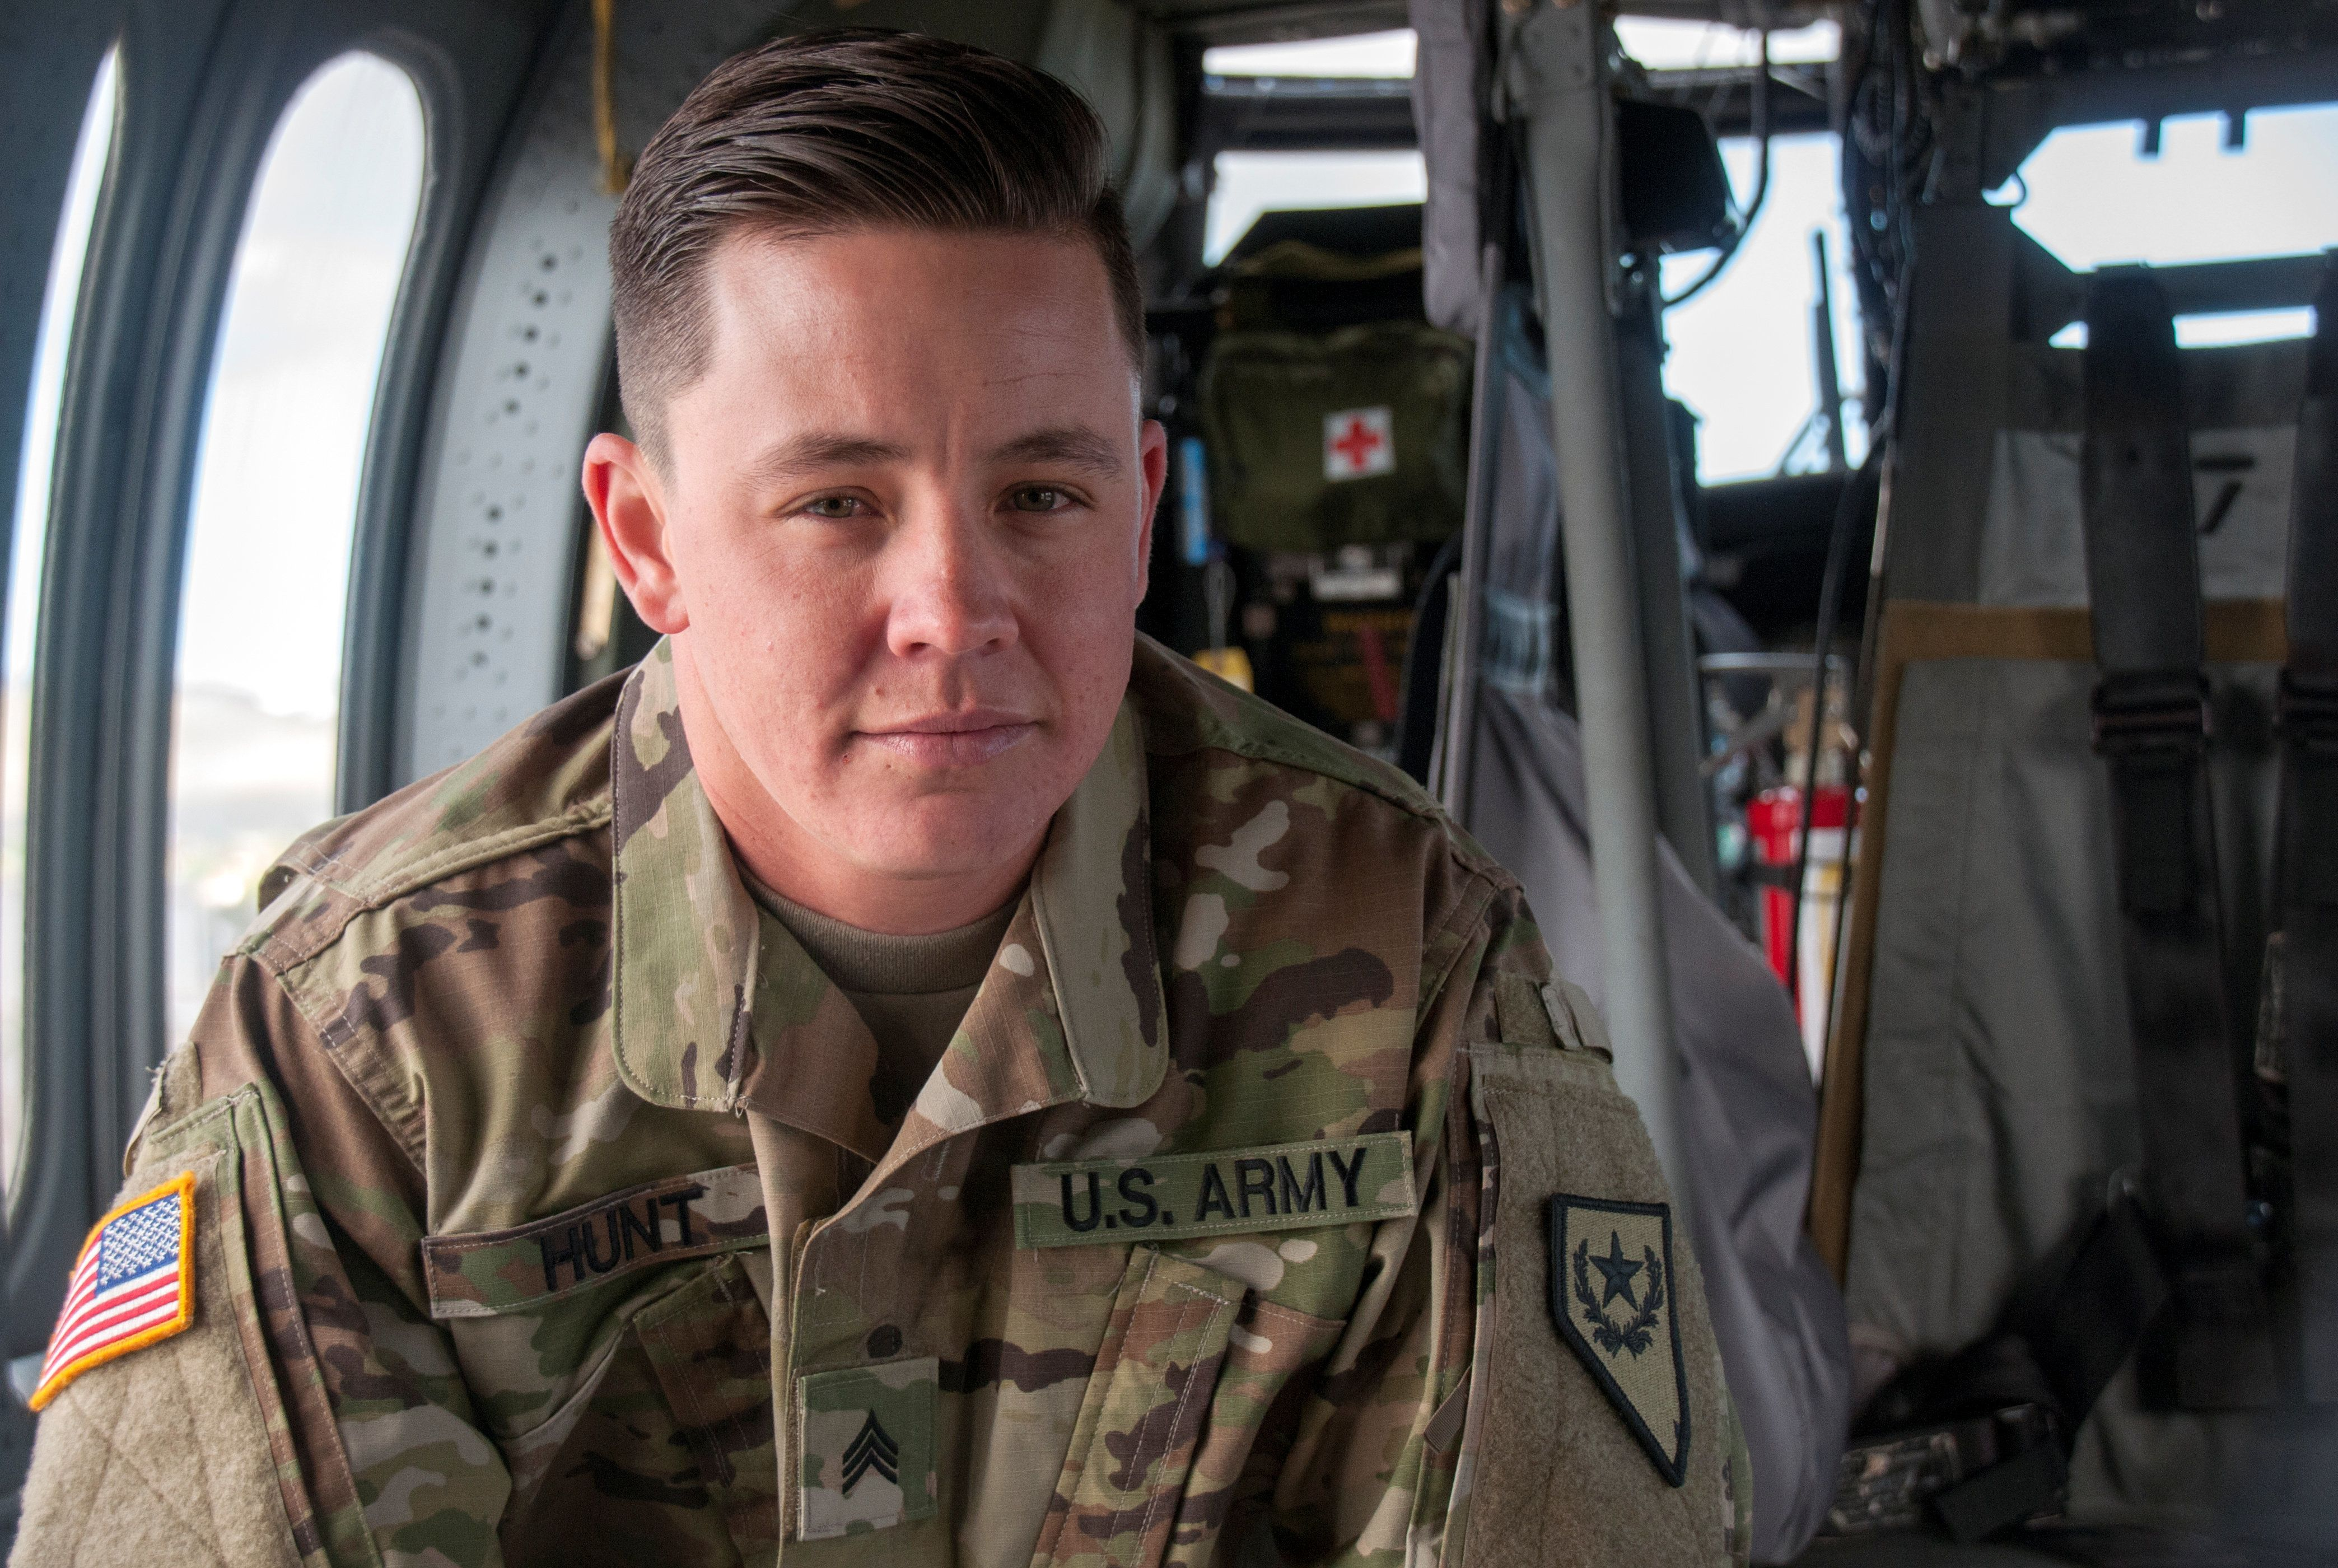 Nevada Army National Guard Sergeant Sam Hunt, an electrician with G Company, 2/238th General Support Aviation Battalion poses for a photo on the flight line at the Army Aviation Support Facility in Stead, Nevada, U.S. May 12, 2017. Hunt is the first openly transgender soldier of the Nevada National Guard. Picture taken May 12, 2017. Tech. Sgt. Emerson Marcus/Nevada Joint Force Headquarters Public Affairs/Handout via REUTERS.  ATTENTION EDITORS - THIS IMAGE WAS PROVIDED BY A THIRD PARTY.